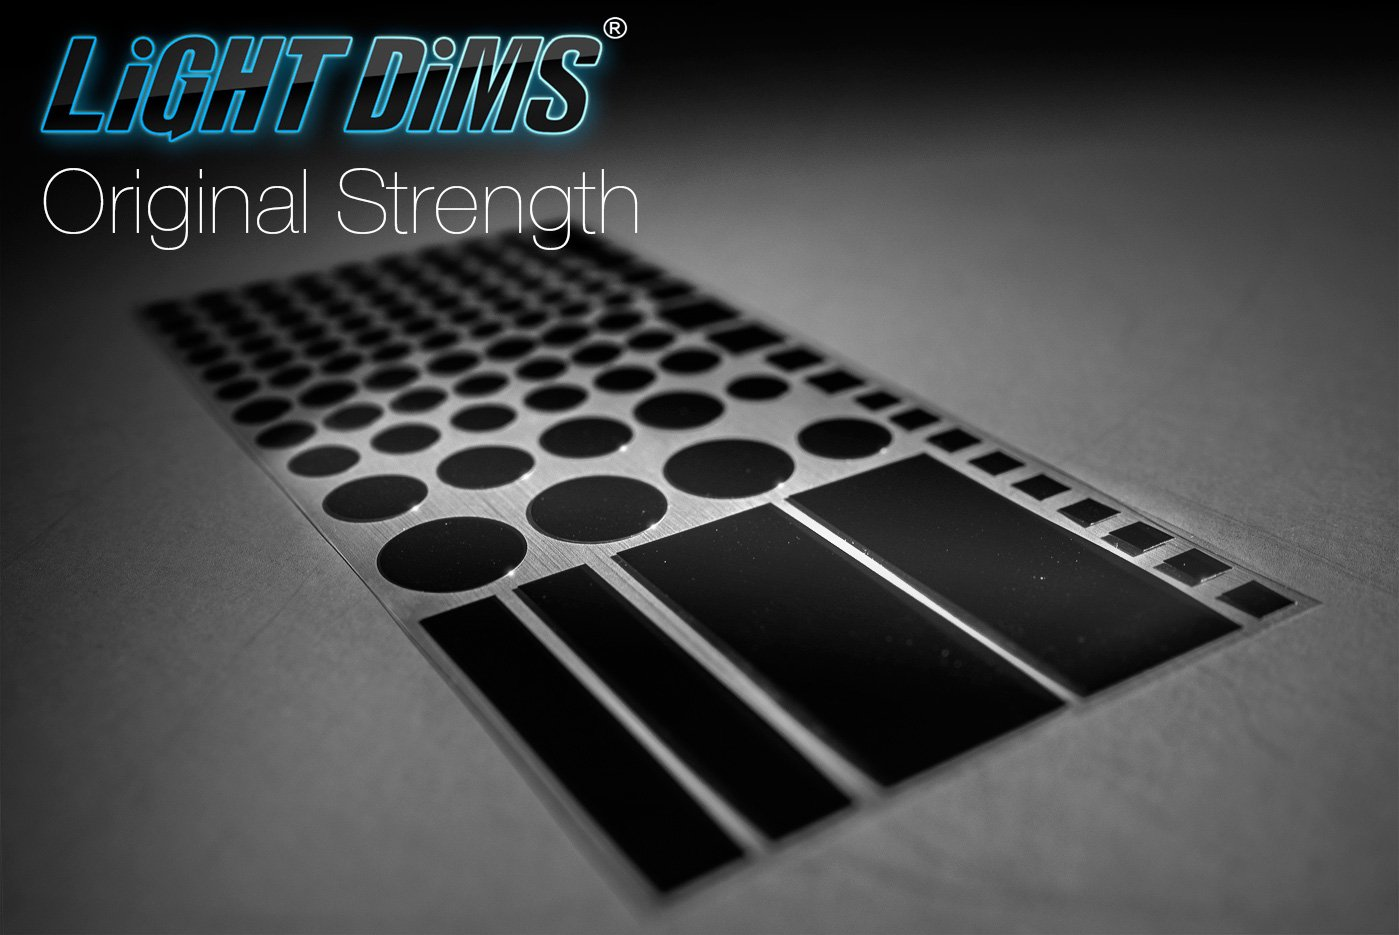 LightDims Original Strength - Light Dimming LED Covers and Light Dimming Sheets for Routers, Electronics and Appliances and More. Dims 50-80% of Light, in Minimal Packaging.